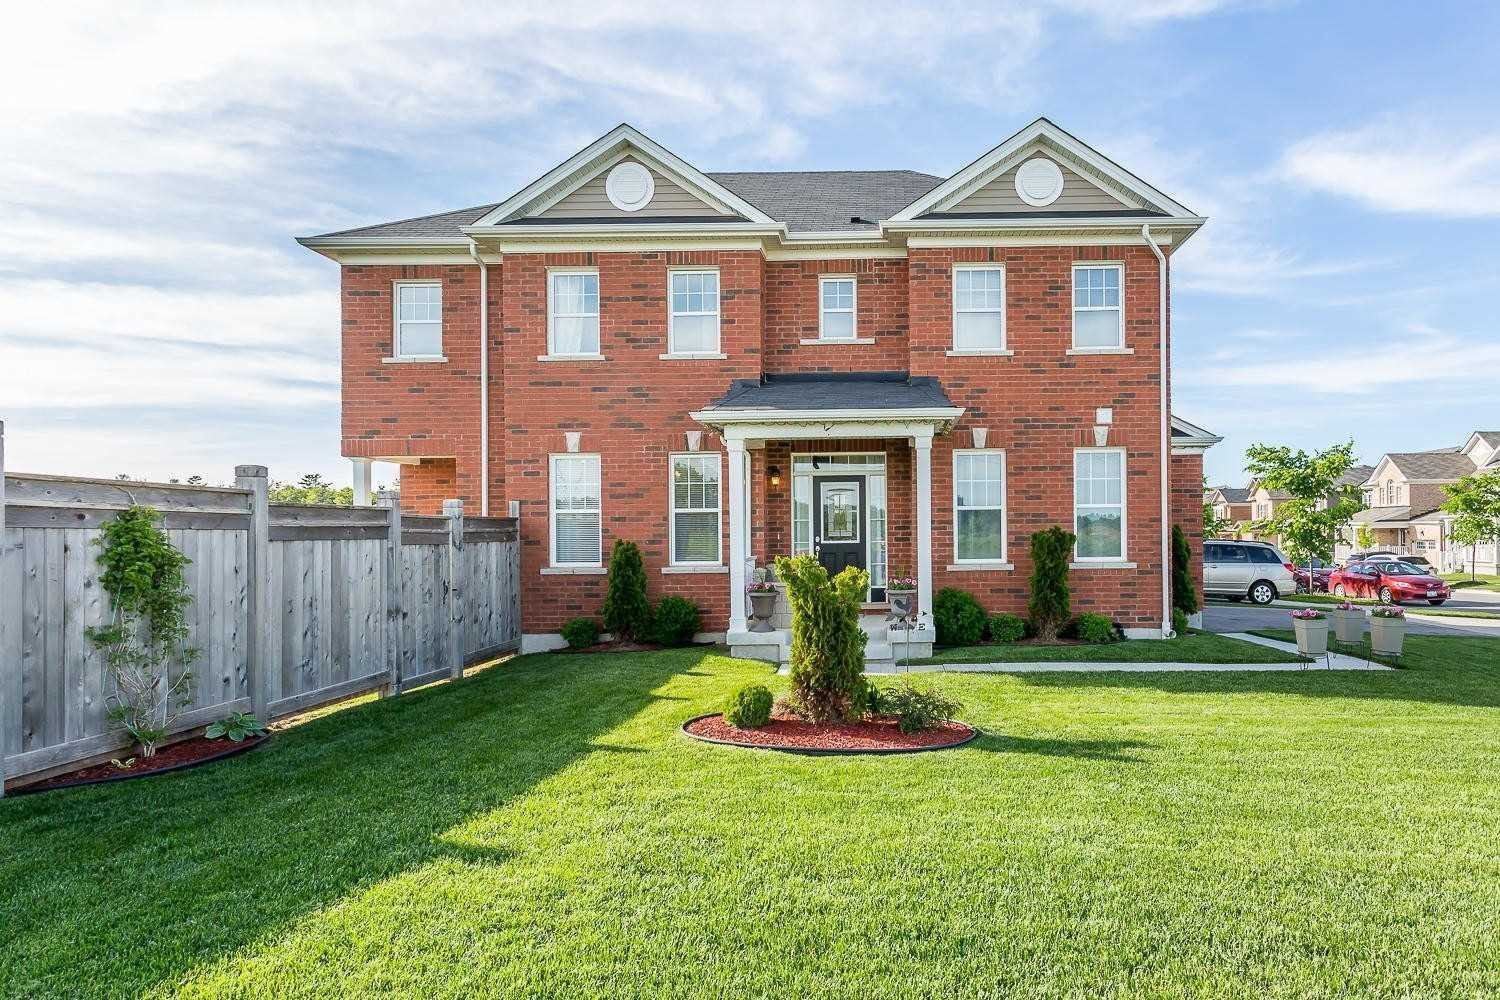 Main Photo: 3 Shoreacres Drive in Kitchener: House (2-Storey) for sale : MLS®# X4553696